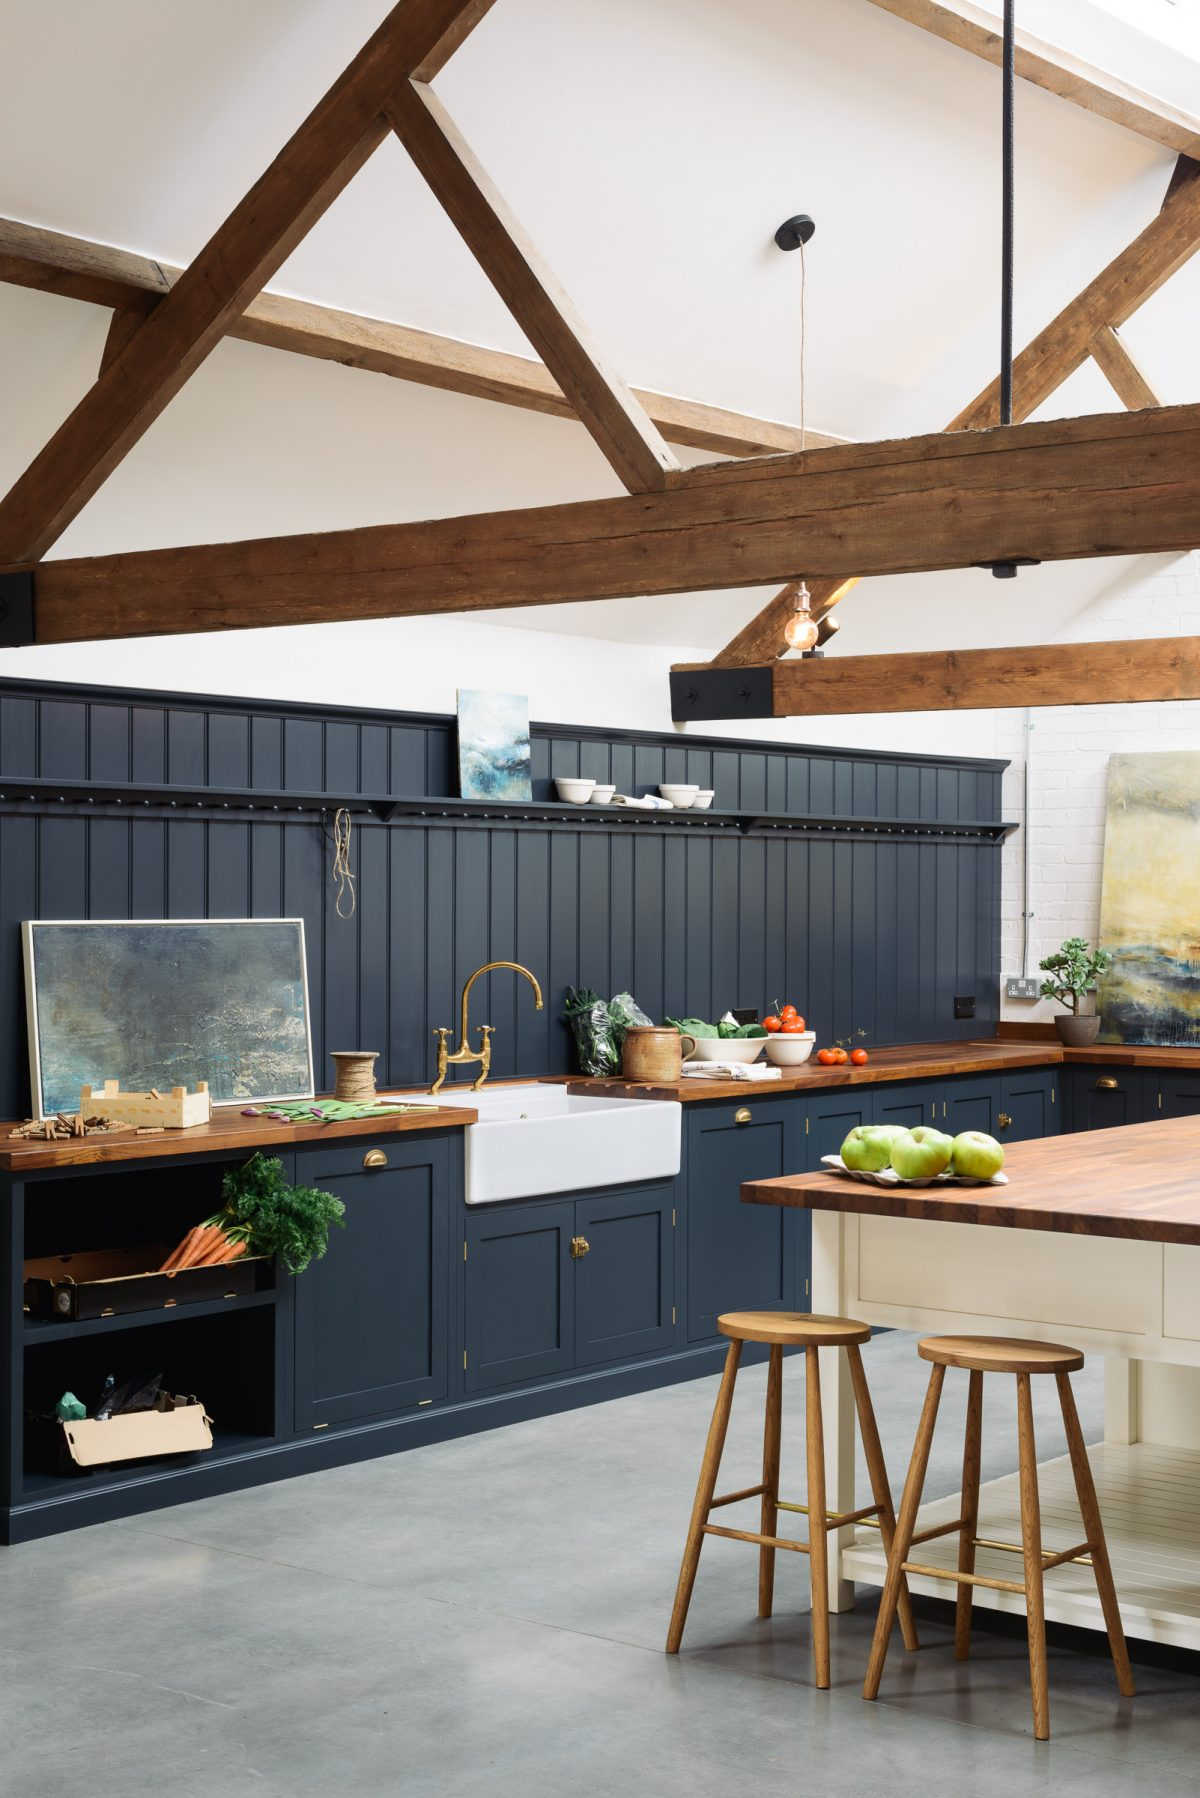 A whole wall of tongue and groove panelling looked really impressive, hand-painted in Pantry Blue.